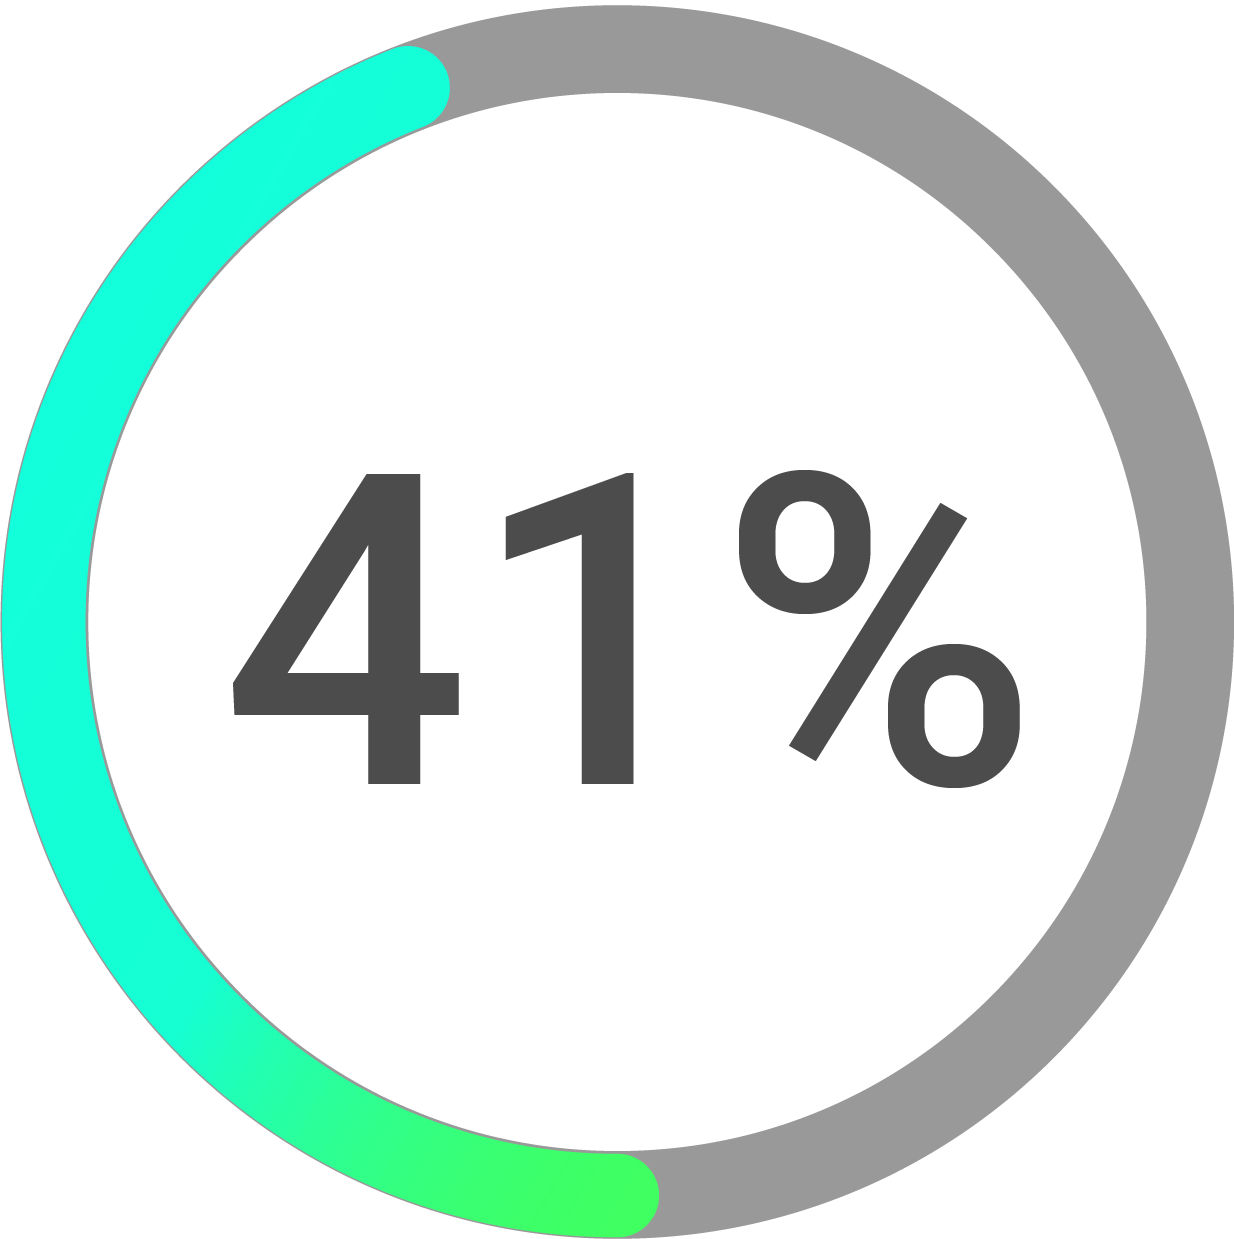 Circle progress icon percentage 41%